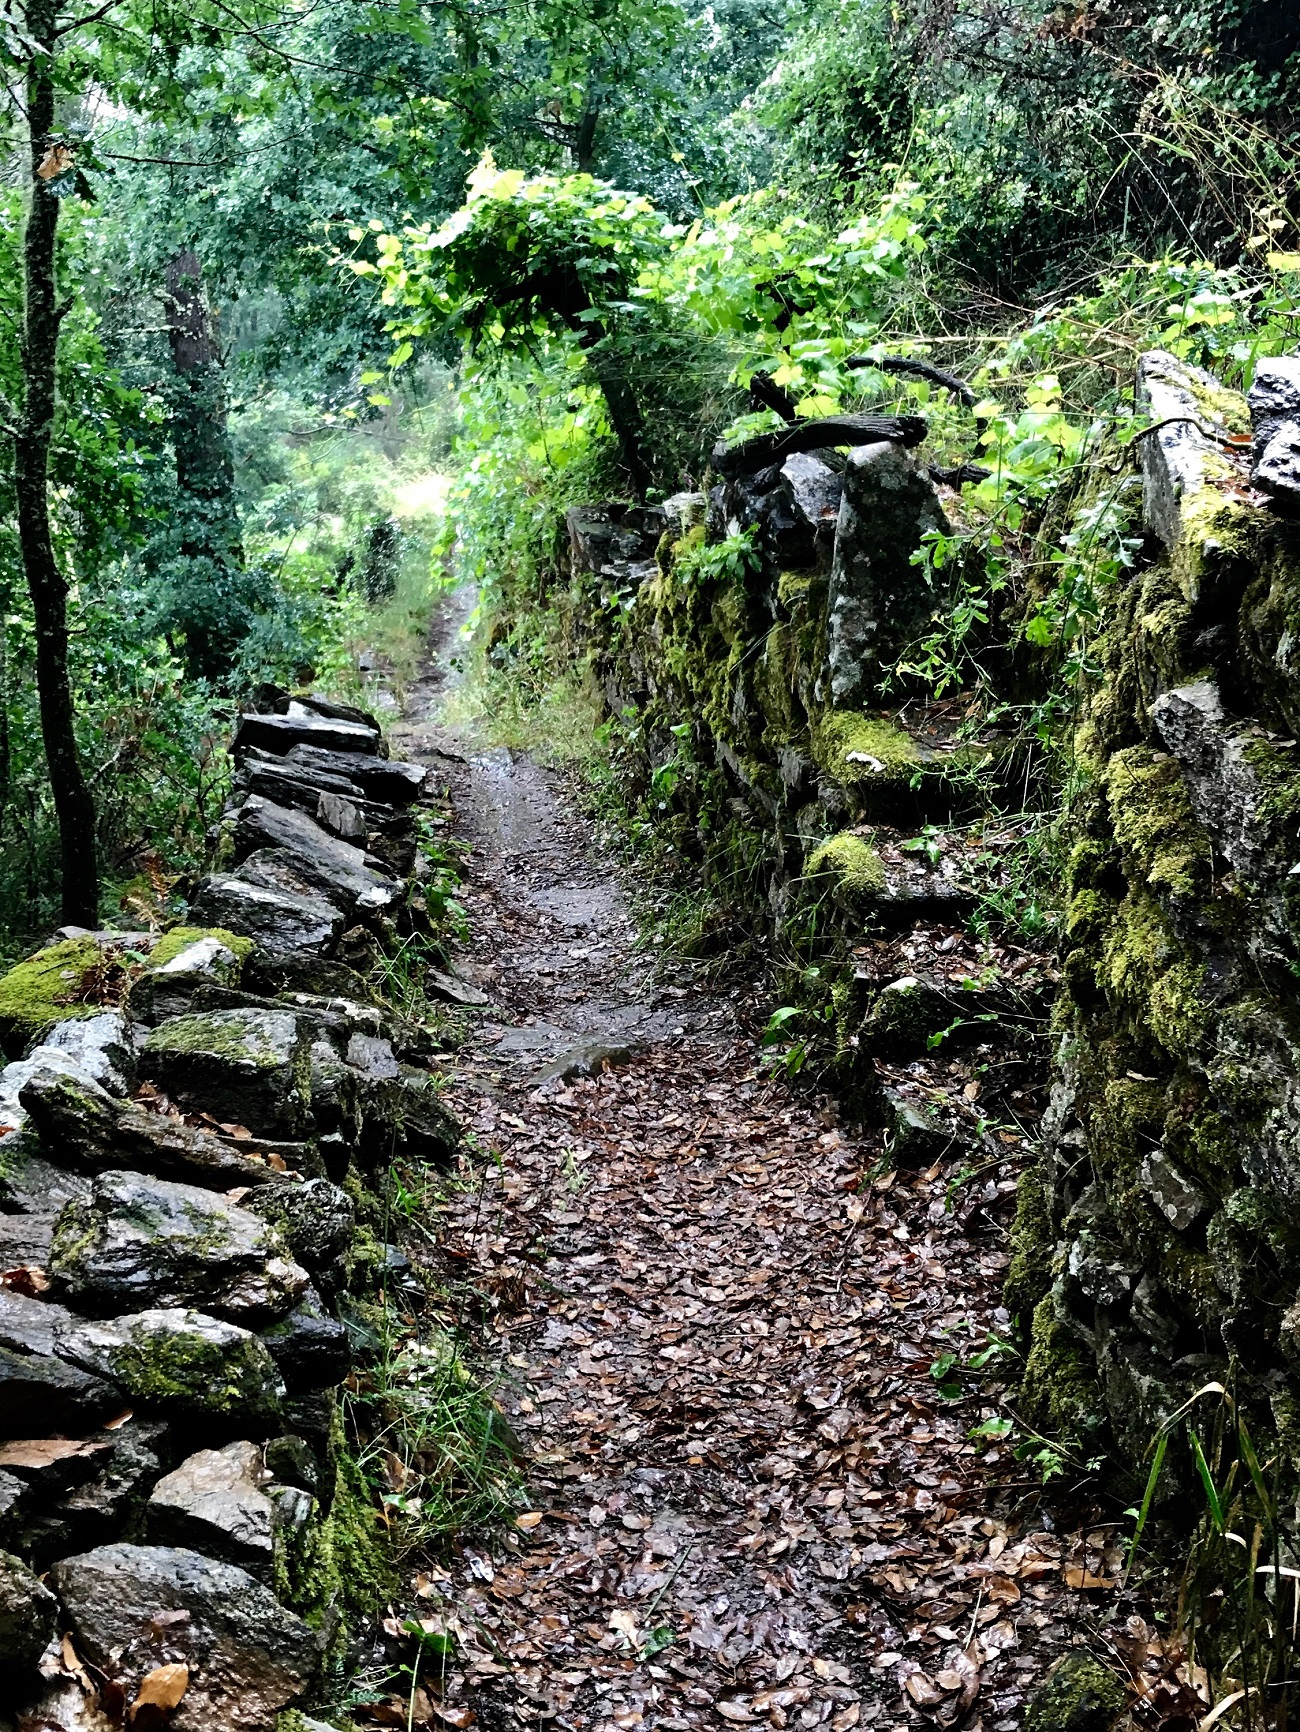 Trail Fervenza de Augacaida, Panton ribeira sacra galicia cascadas waterfalls hiking walks photo art travel